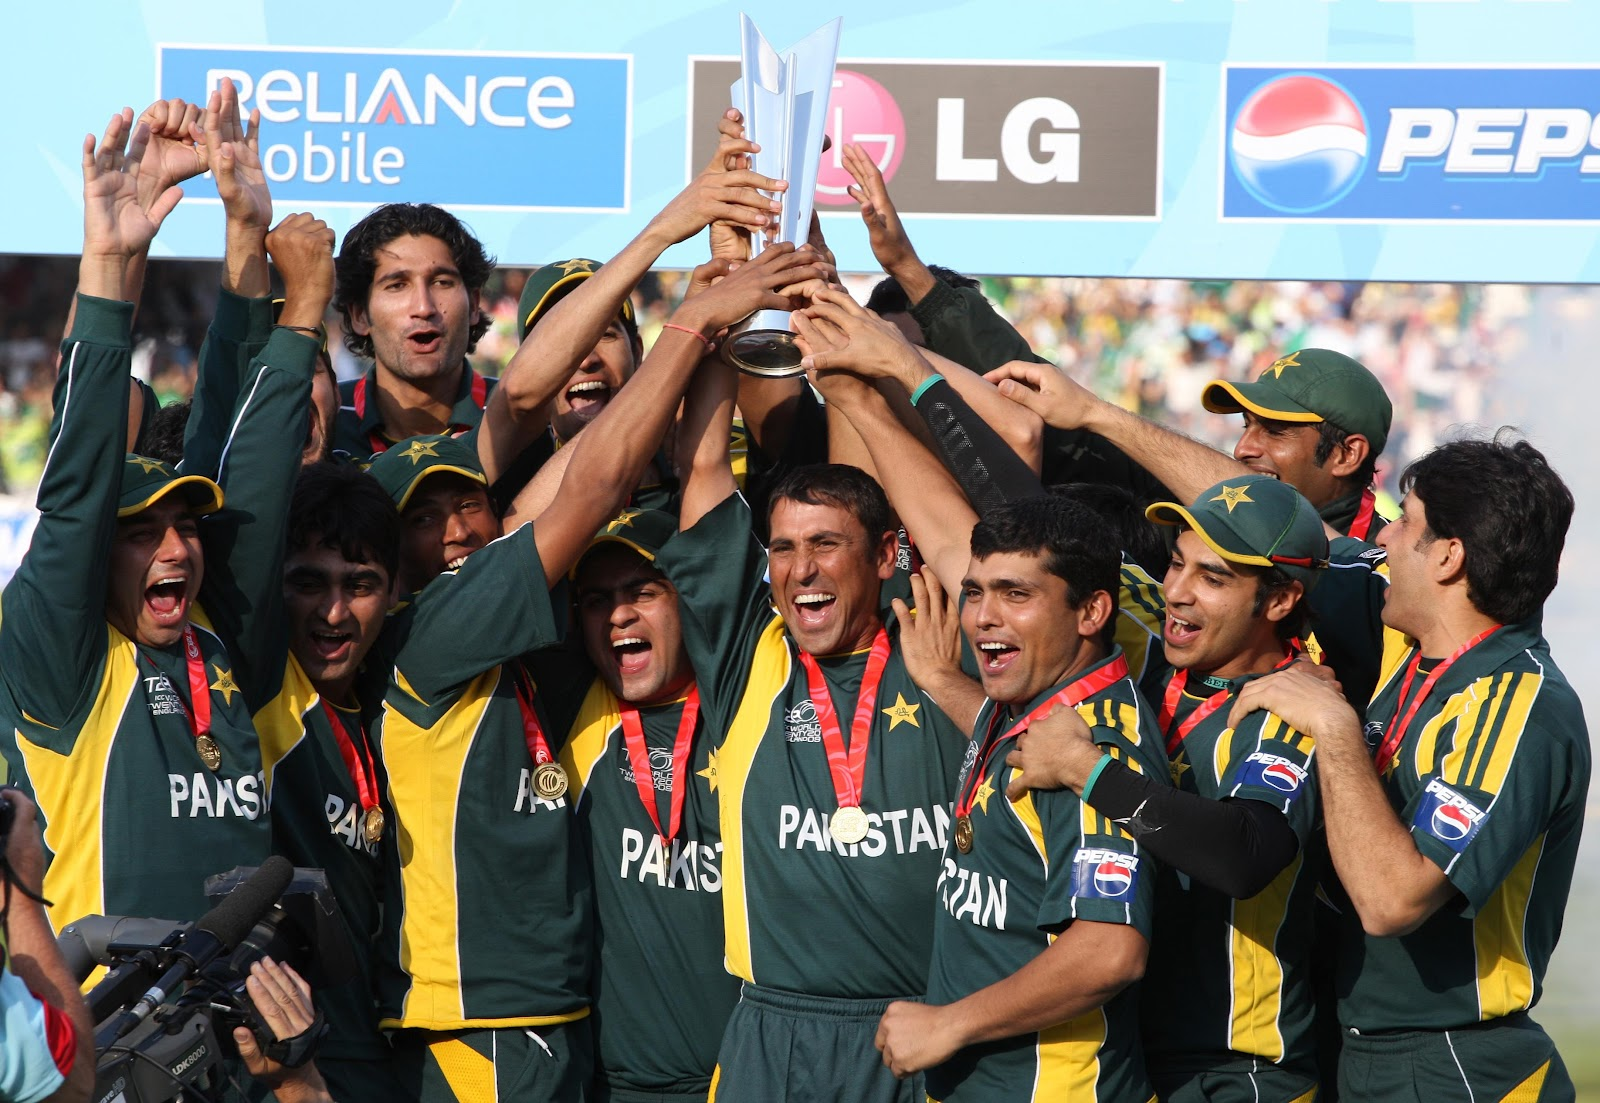 http://1.bp.blogspot.com/-e14icfa5N0A/UFY7C6w-mcI/AAAAAAAABm0/dY-i9B3OmX8/s1600/pakistan-cricket-team-wallpapers+%284%29.jpg